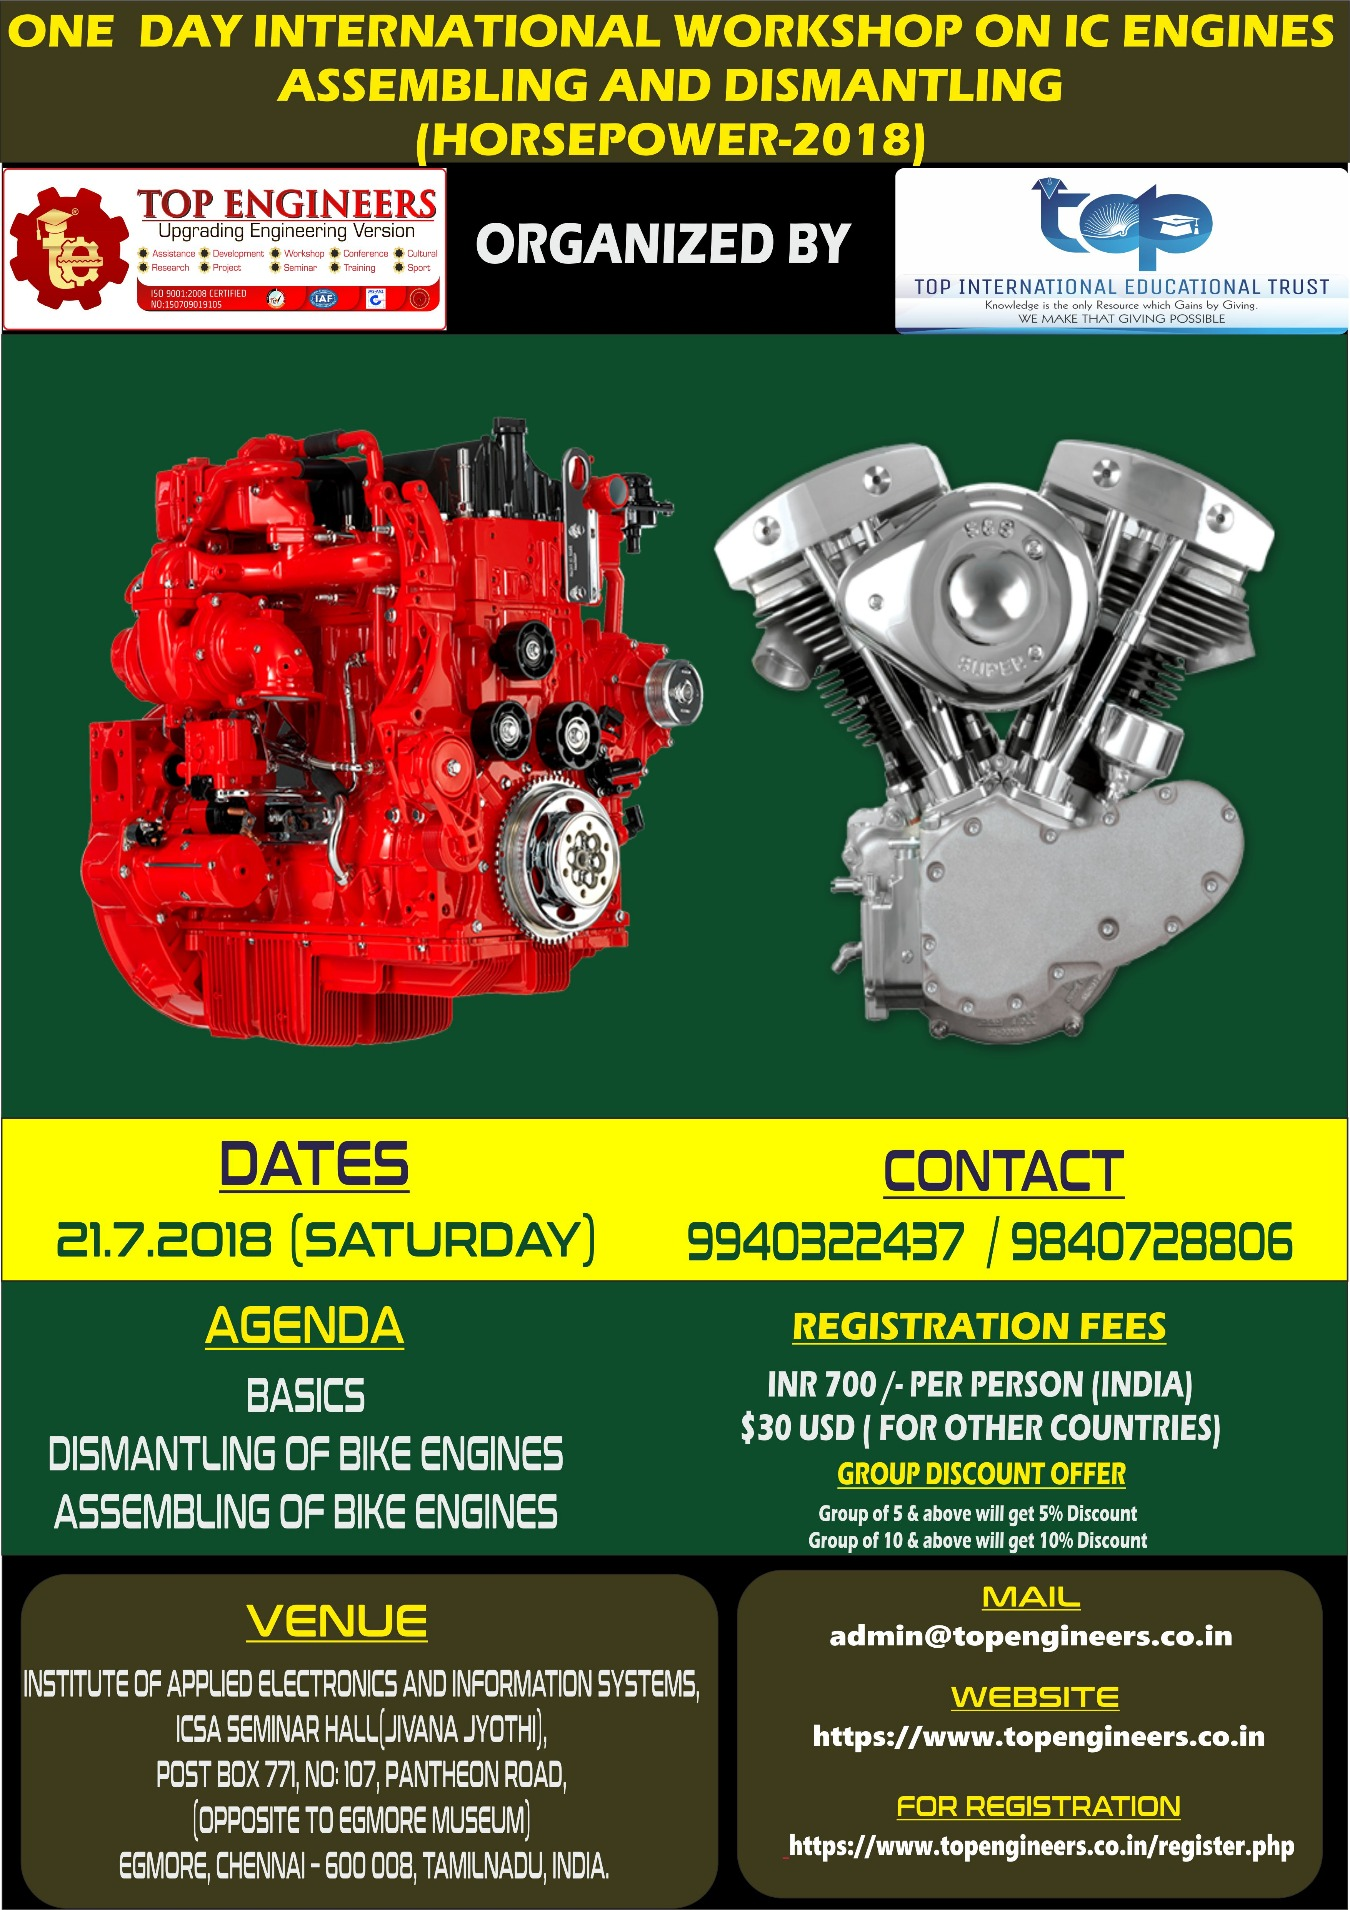 ONE DAY INTERNATIONAL WORKSHOP ON IC ENGINES ASSEMBLING AND DISMANTLING  (HORSEPOWER-2018) Tickets by TOP ENGINEERS, 21 Jul, 2018, Chennai Event